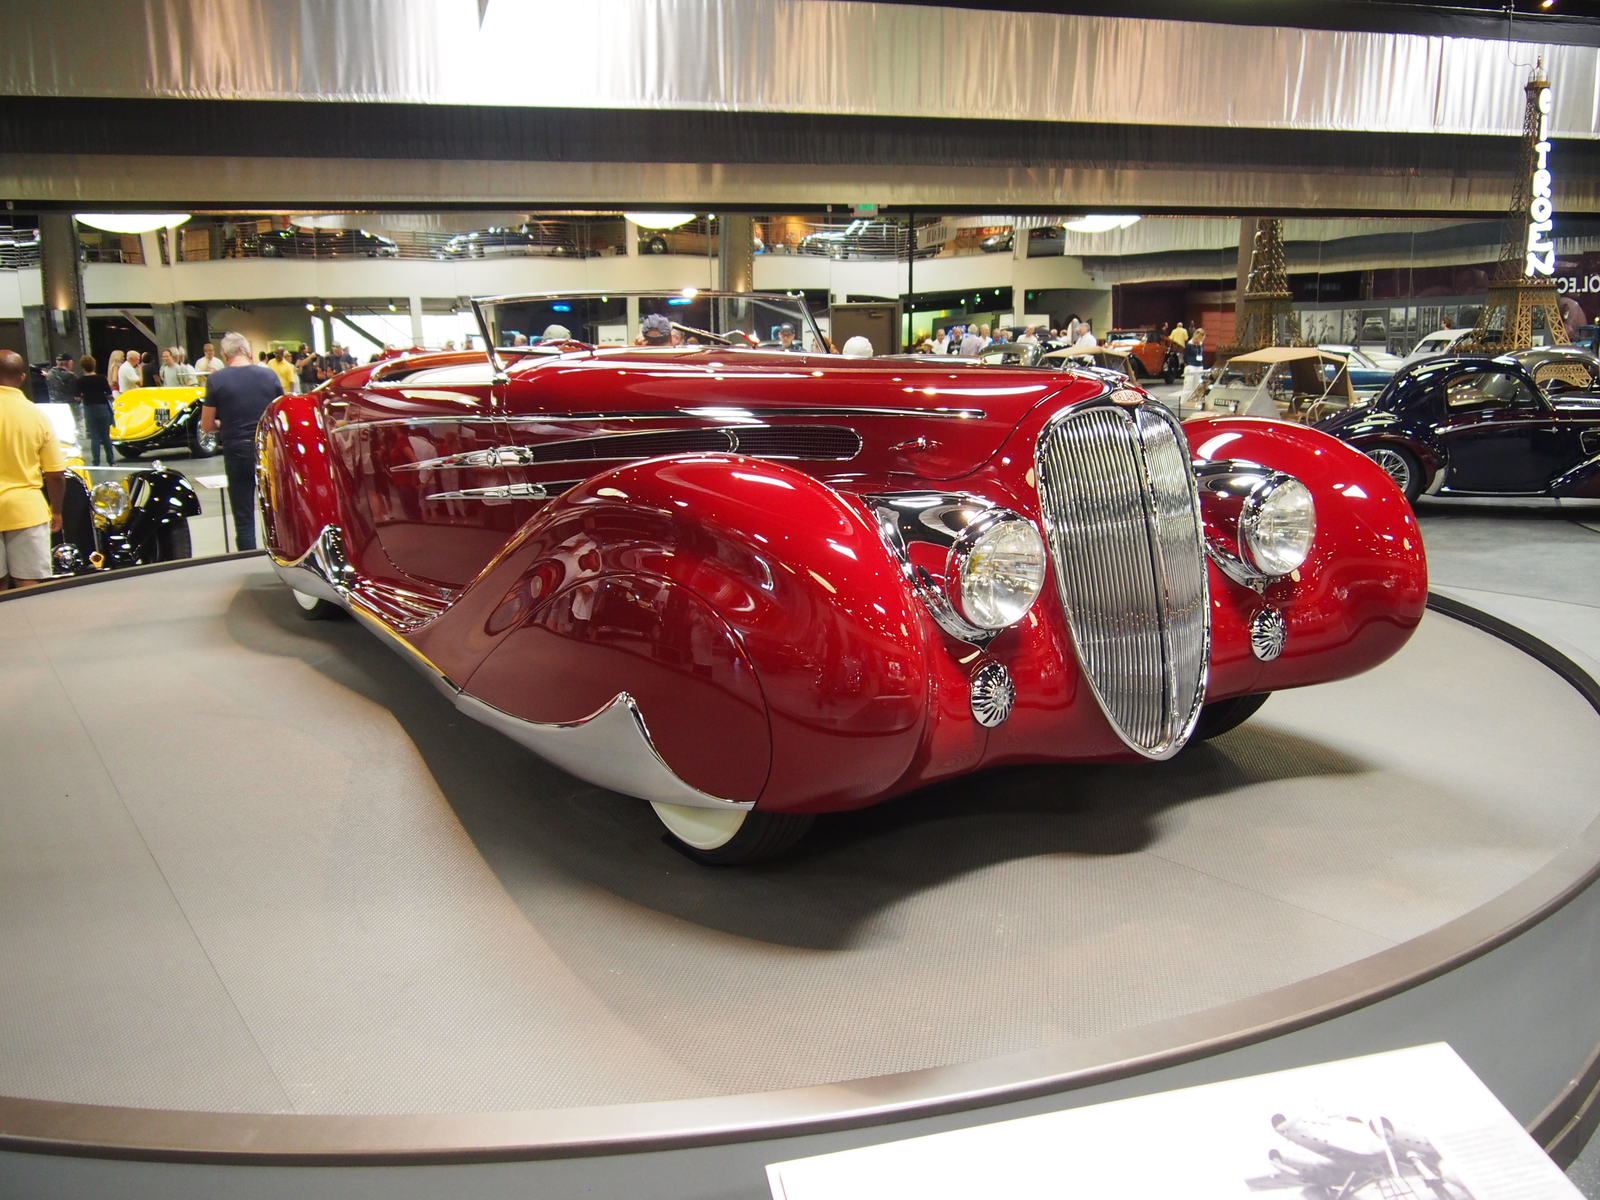 Another incredible Figoni & Falaschi Delahaye. This is a 1939 Type 165 Cabriolet. This car sat on a turntable in the middle of the main floor and I could have watched it go around and around all day. Somehow, this car found its way to Hawaii at one point, and was bought for $1,200 bucks in the 70's by a tow truck driver.